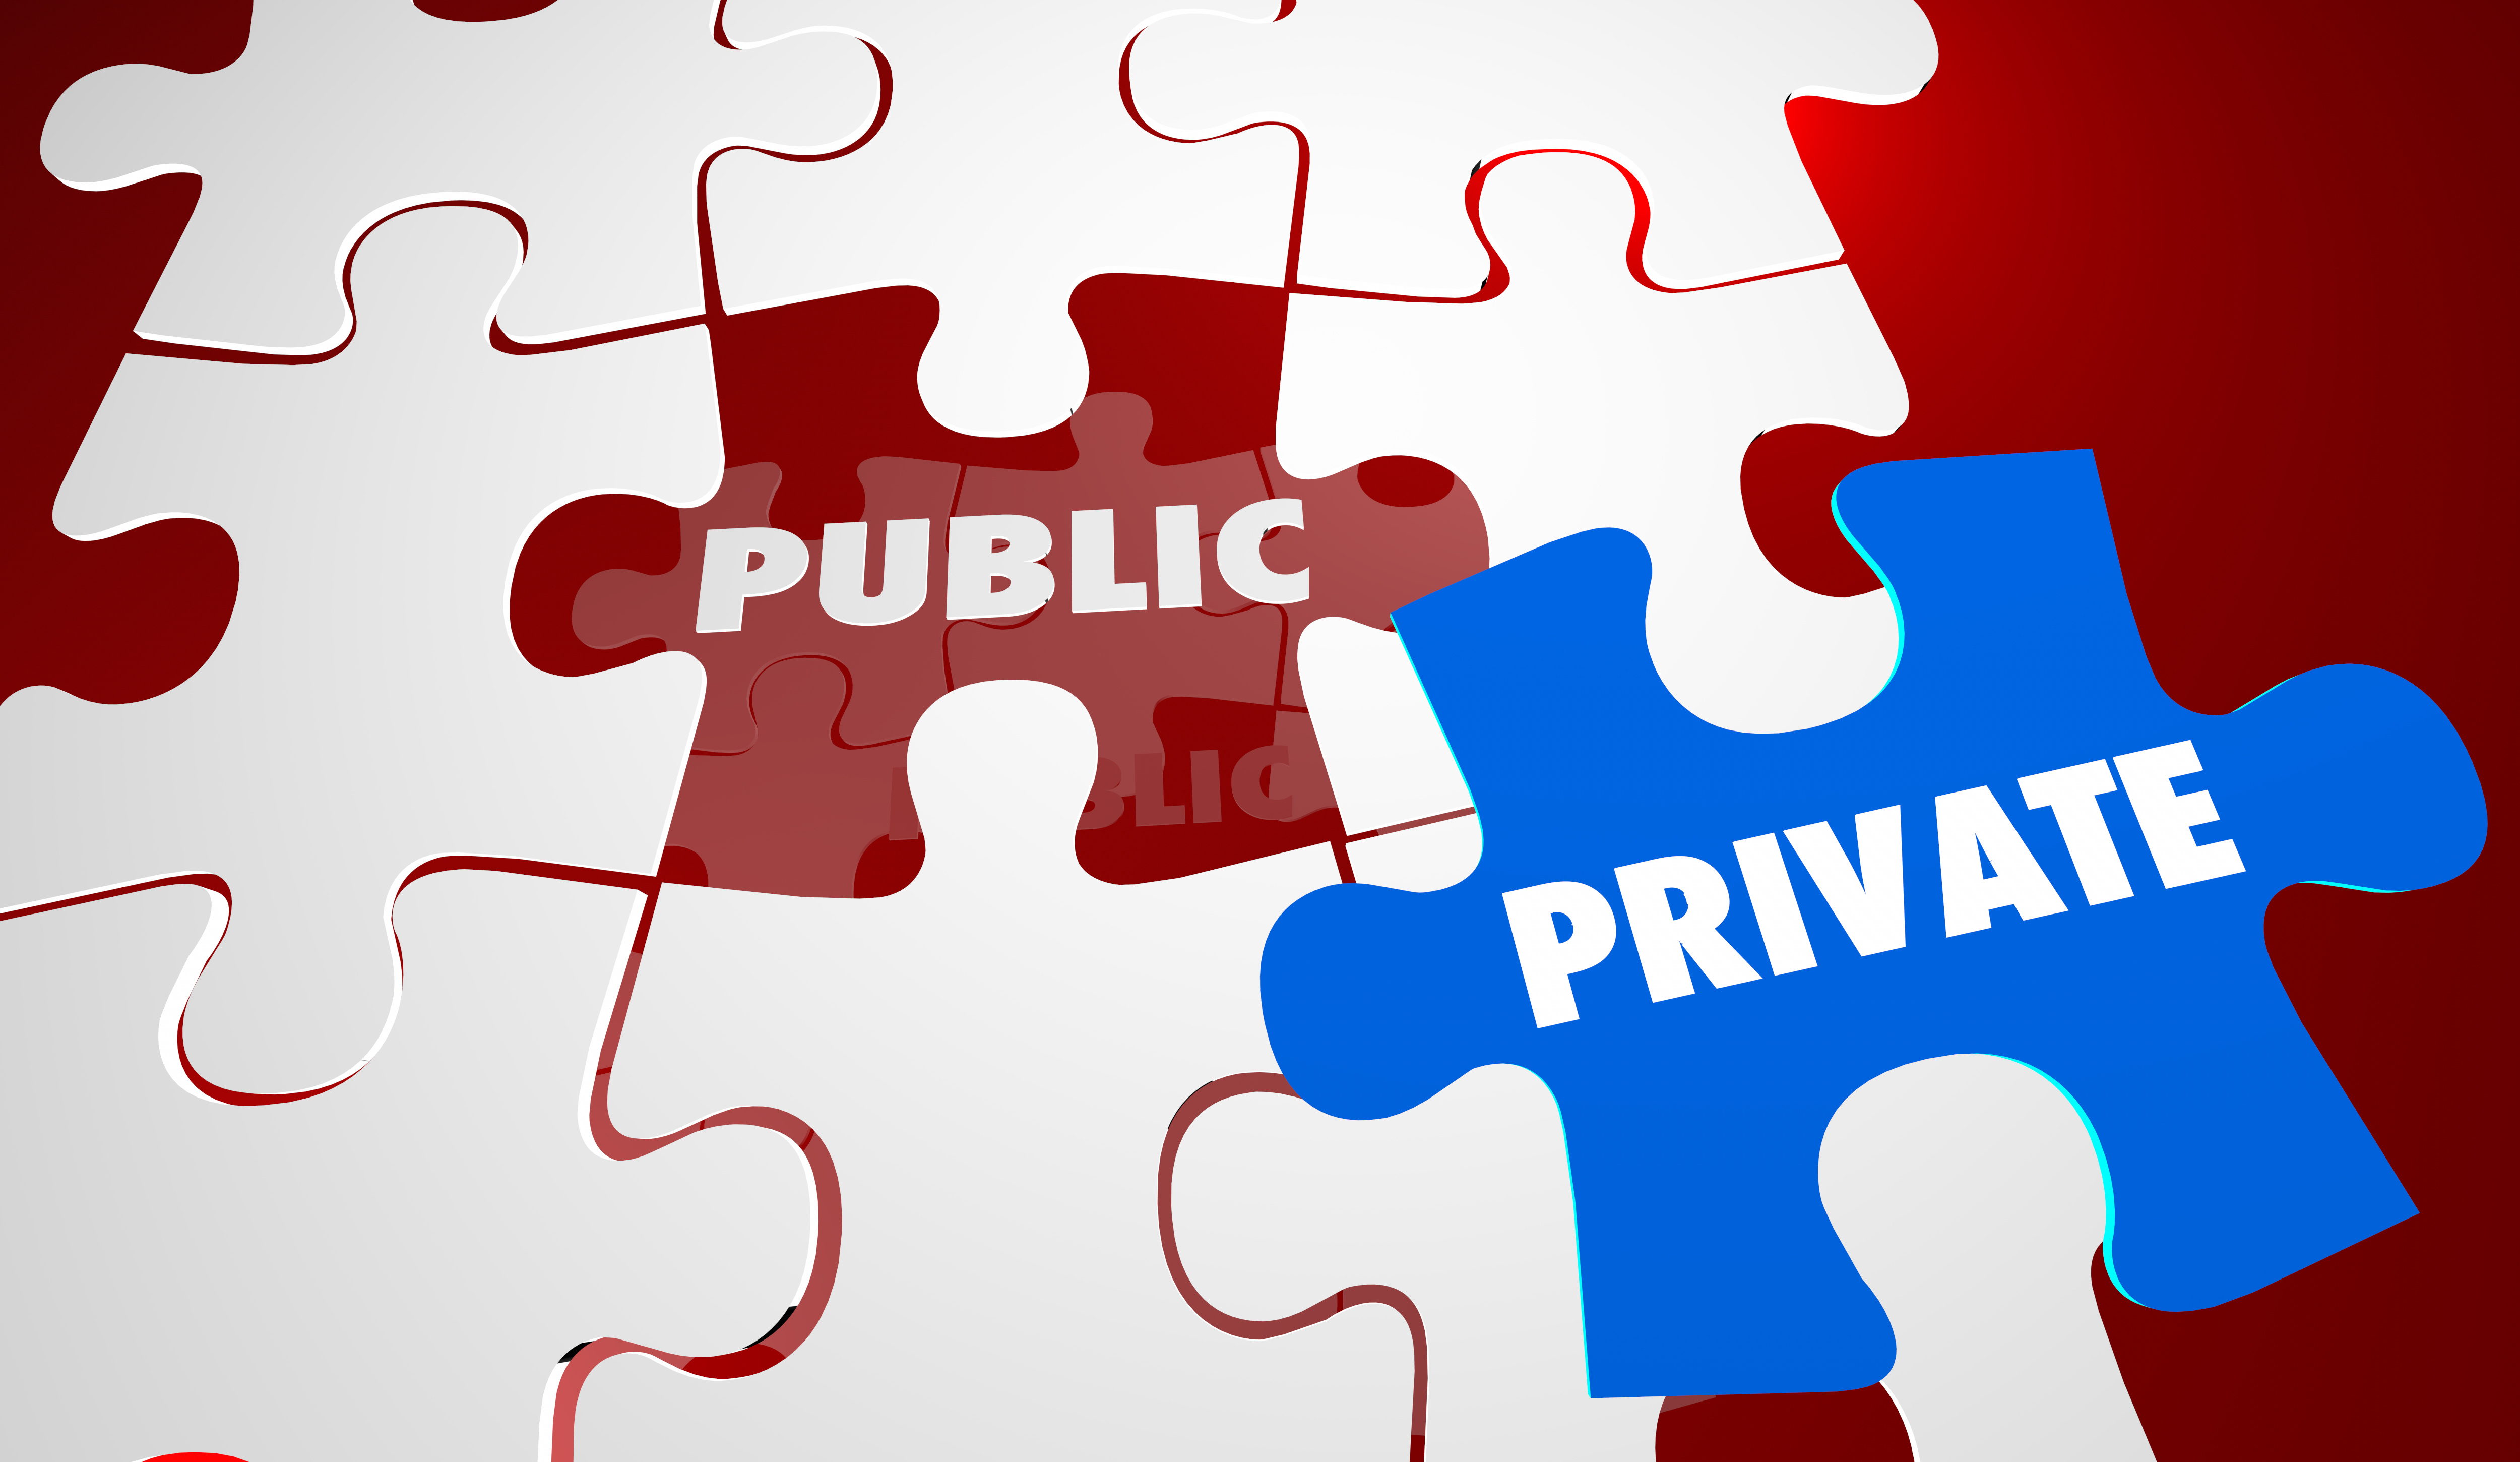 Public and Private as Puzzle Pieces